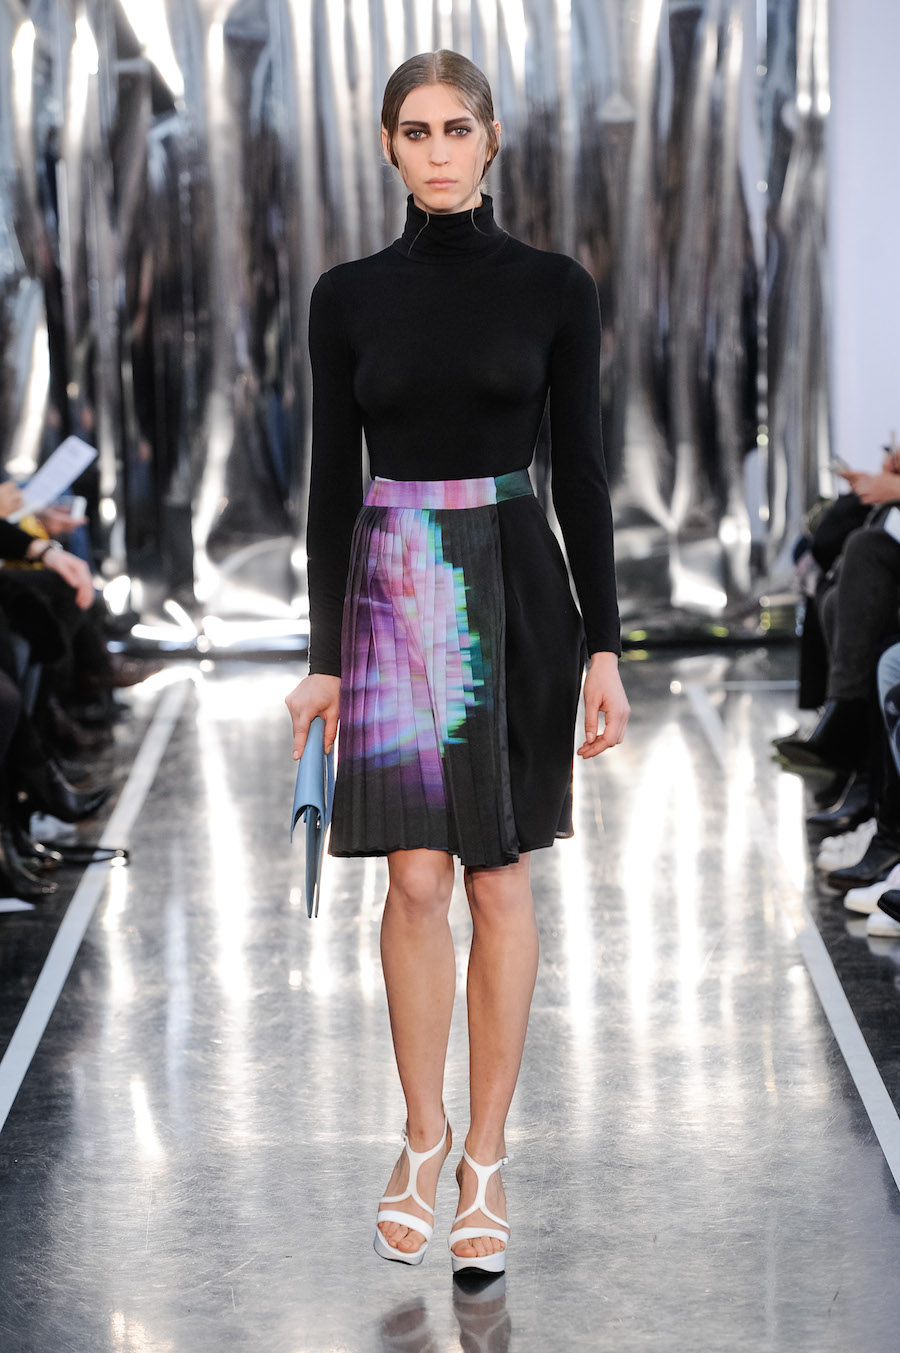 CHRISTINE PHUNG GLITCHOLOGIE PARIS FASHION WEEK FW15 16 INSTITUT DU MONDE ARABE